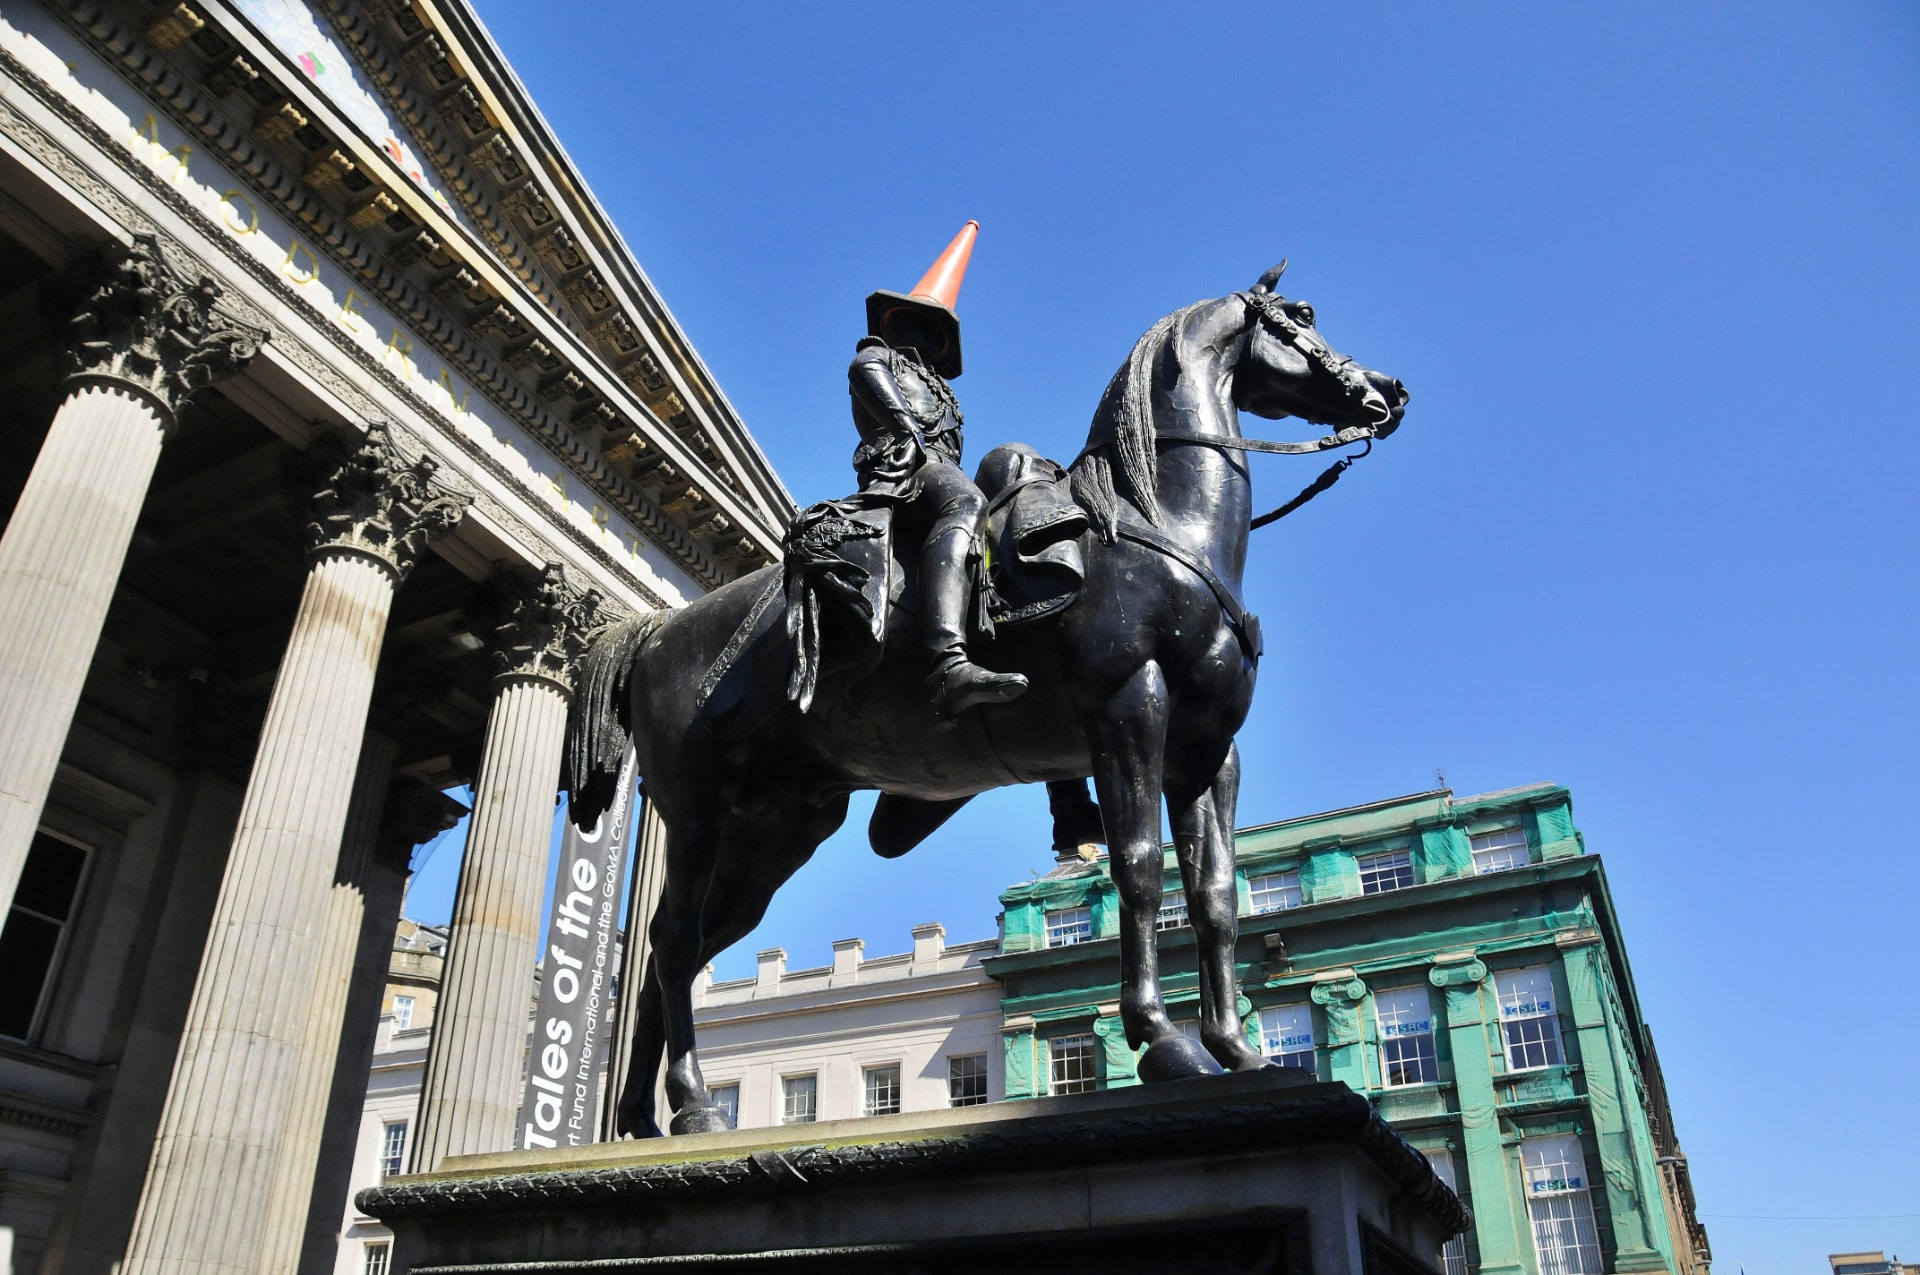 duke-of-wellington-statue-in-glasgow-with-a-traffic-cone-on-its-head